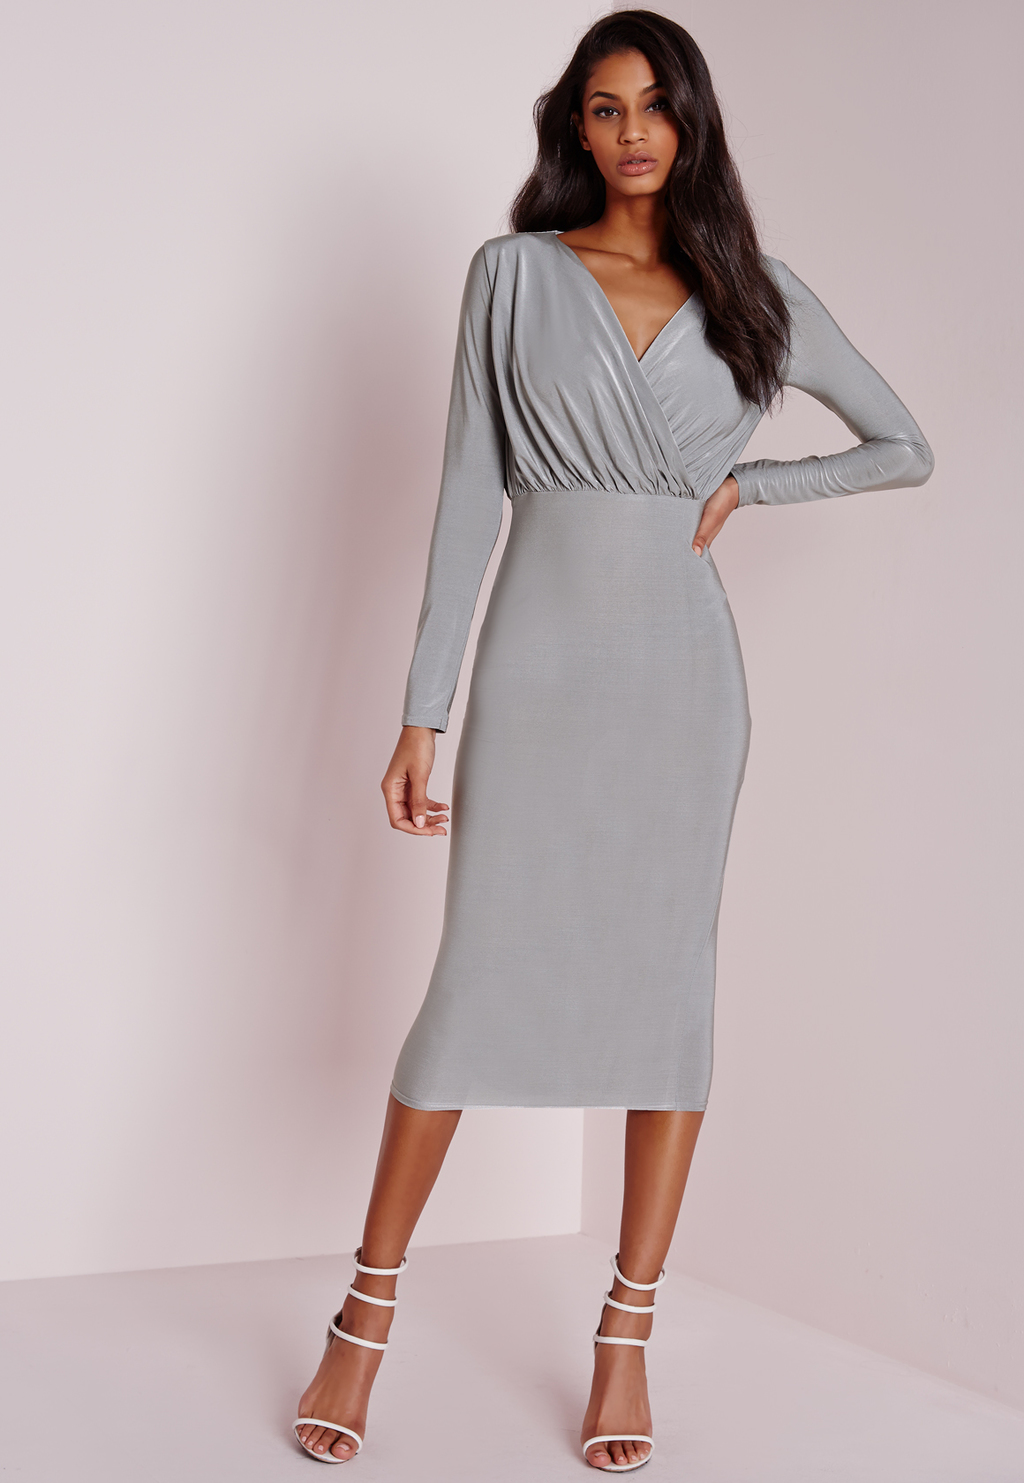 Slinky Wrap Midi Dress Grey, Grey - length: below the knee; neckline: low v-neck; fit: tight; pattern: plain; style: bodycon; predominant colour: light grey; occasions: evening; fibres: polyester/polyamide - stretch; sleeve length: long sleeve; sleeve style: standard; texture group: jersey - clingy; pattern type: fabric; season: a/w 2015; wardrobe: event